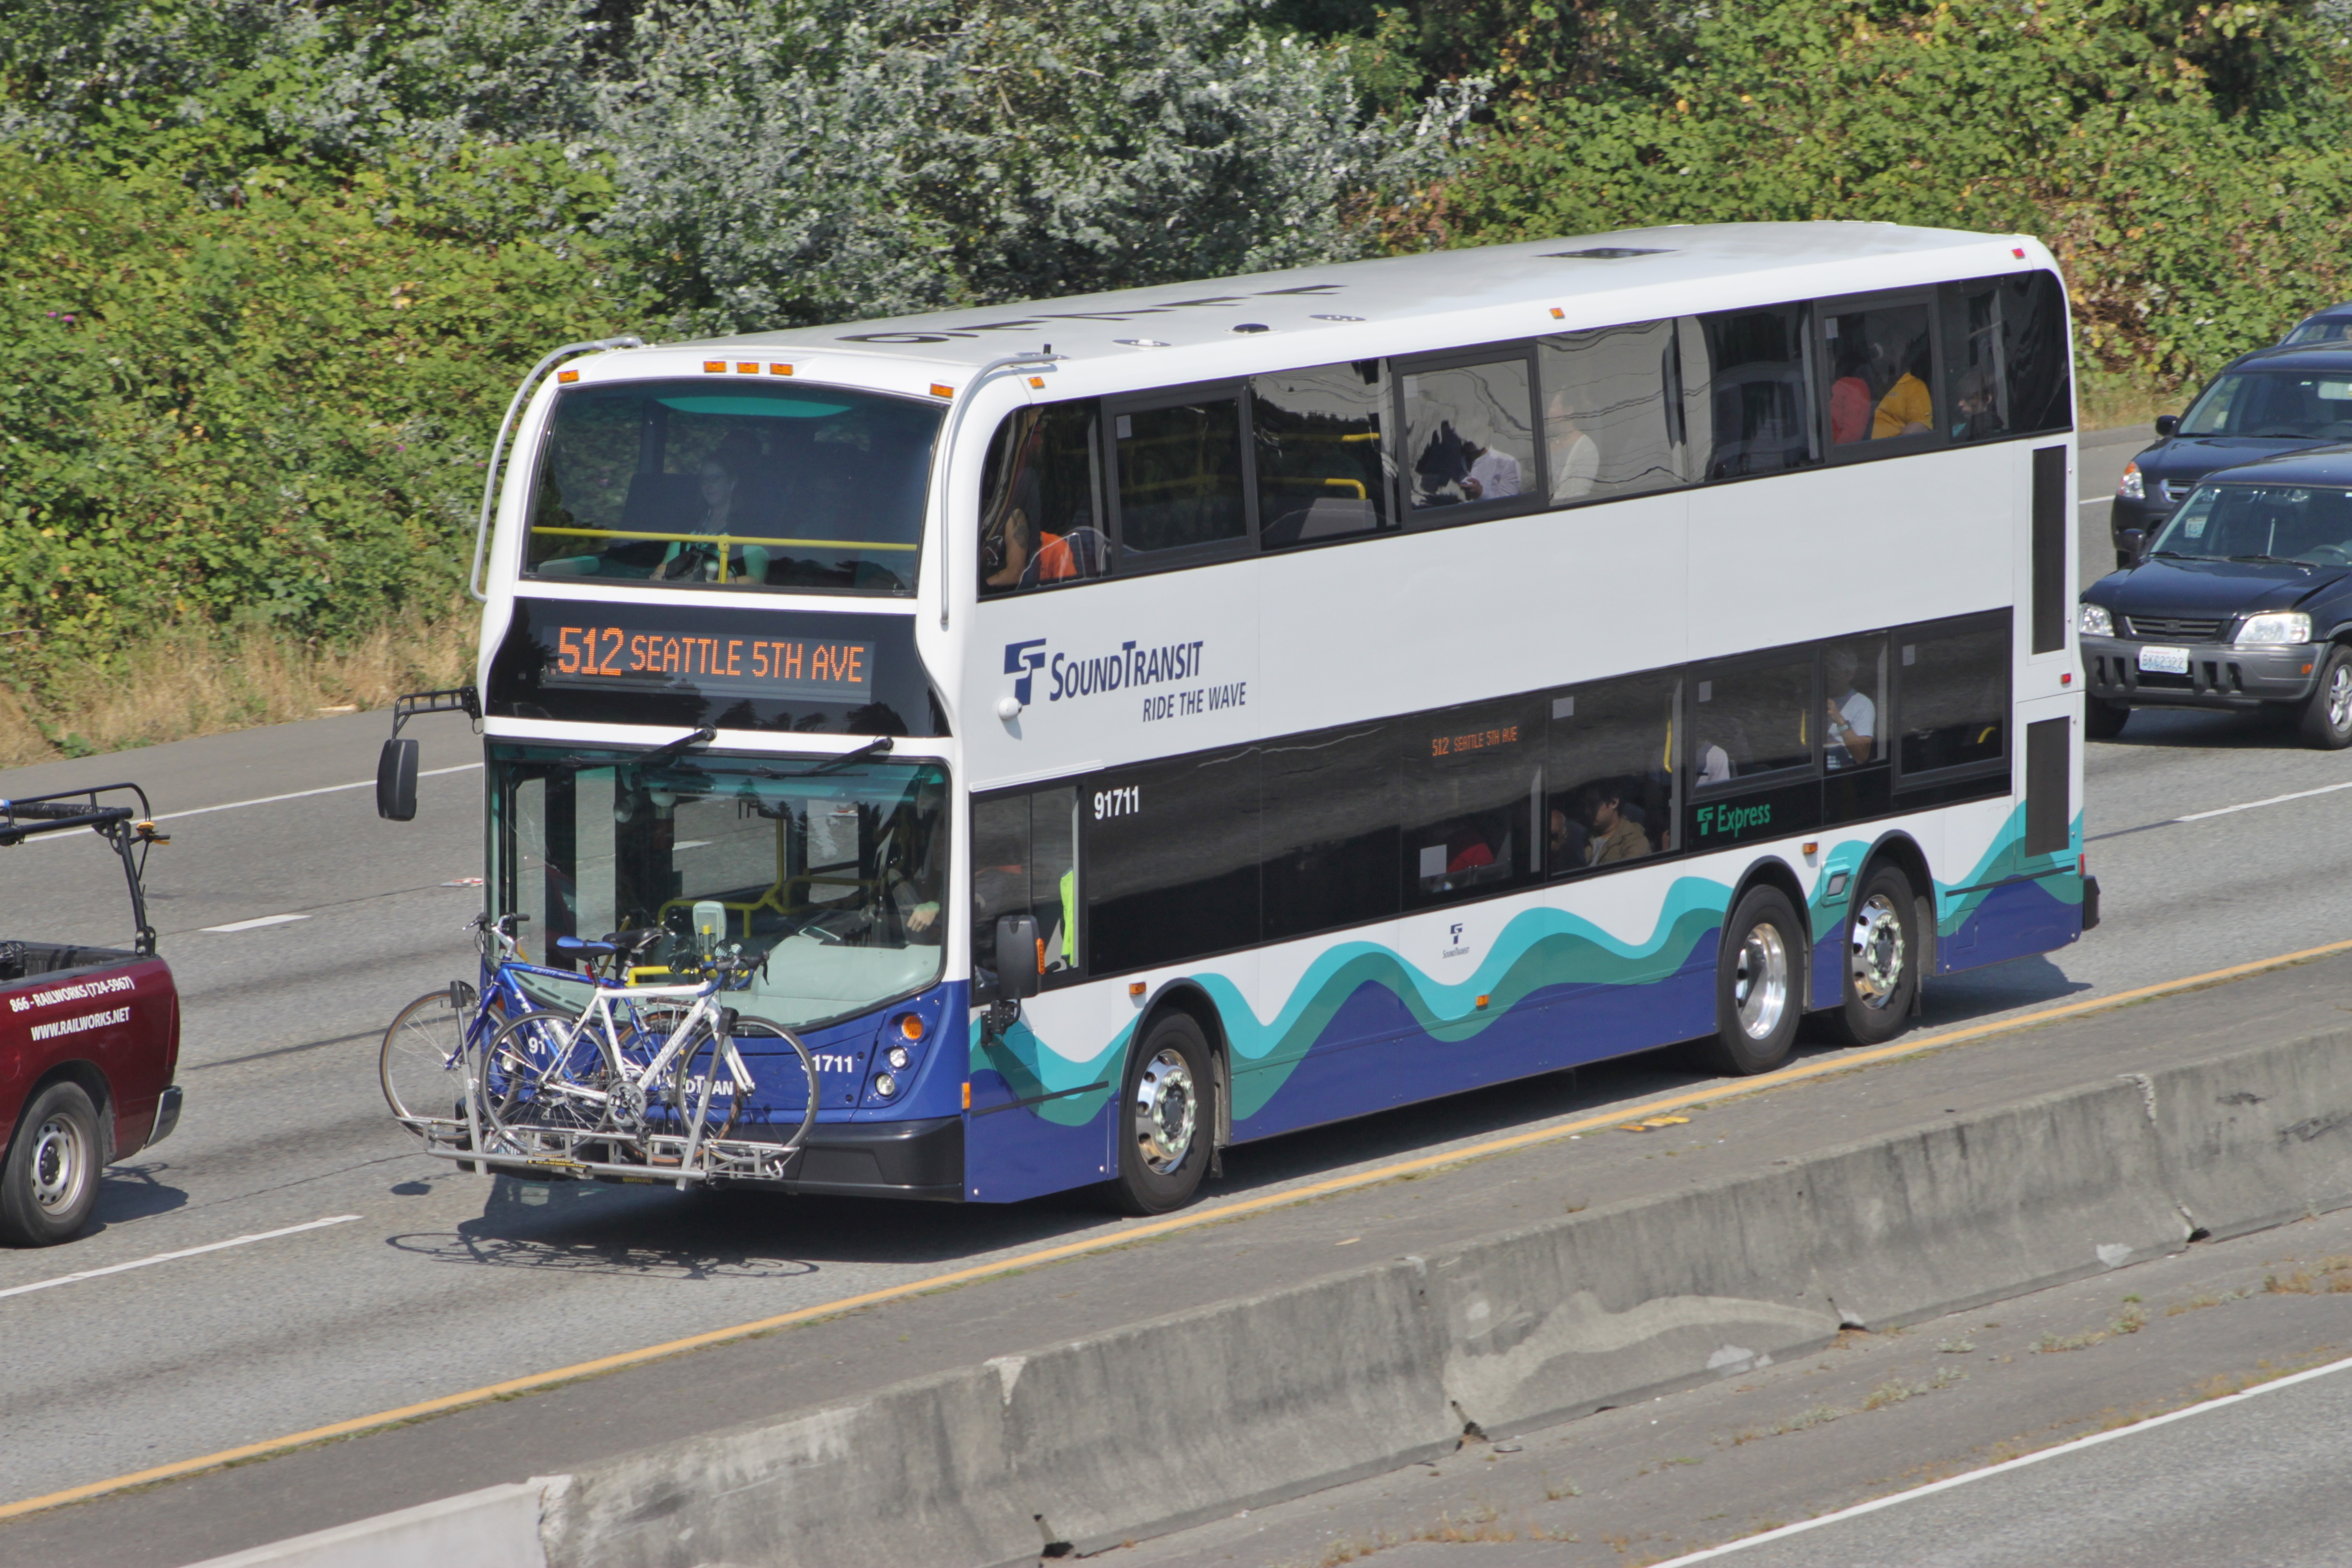 File:Sound Transit double-decker bus 91711 on route 512